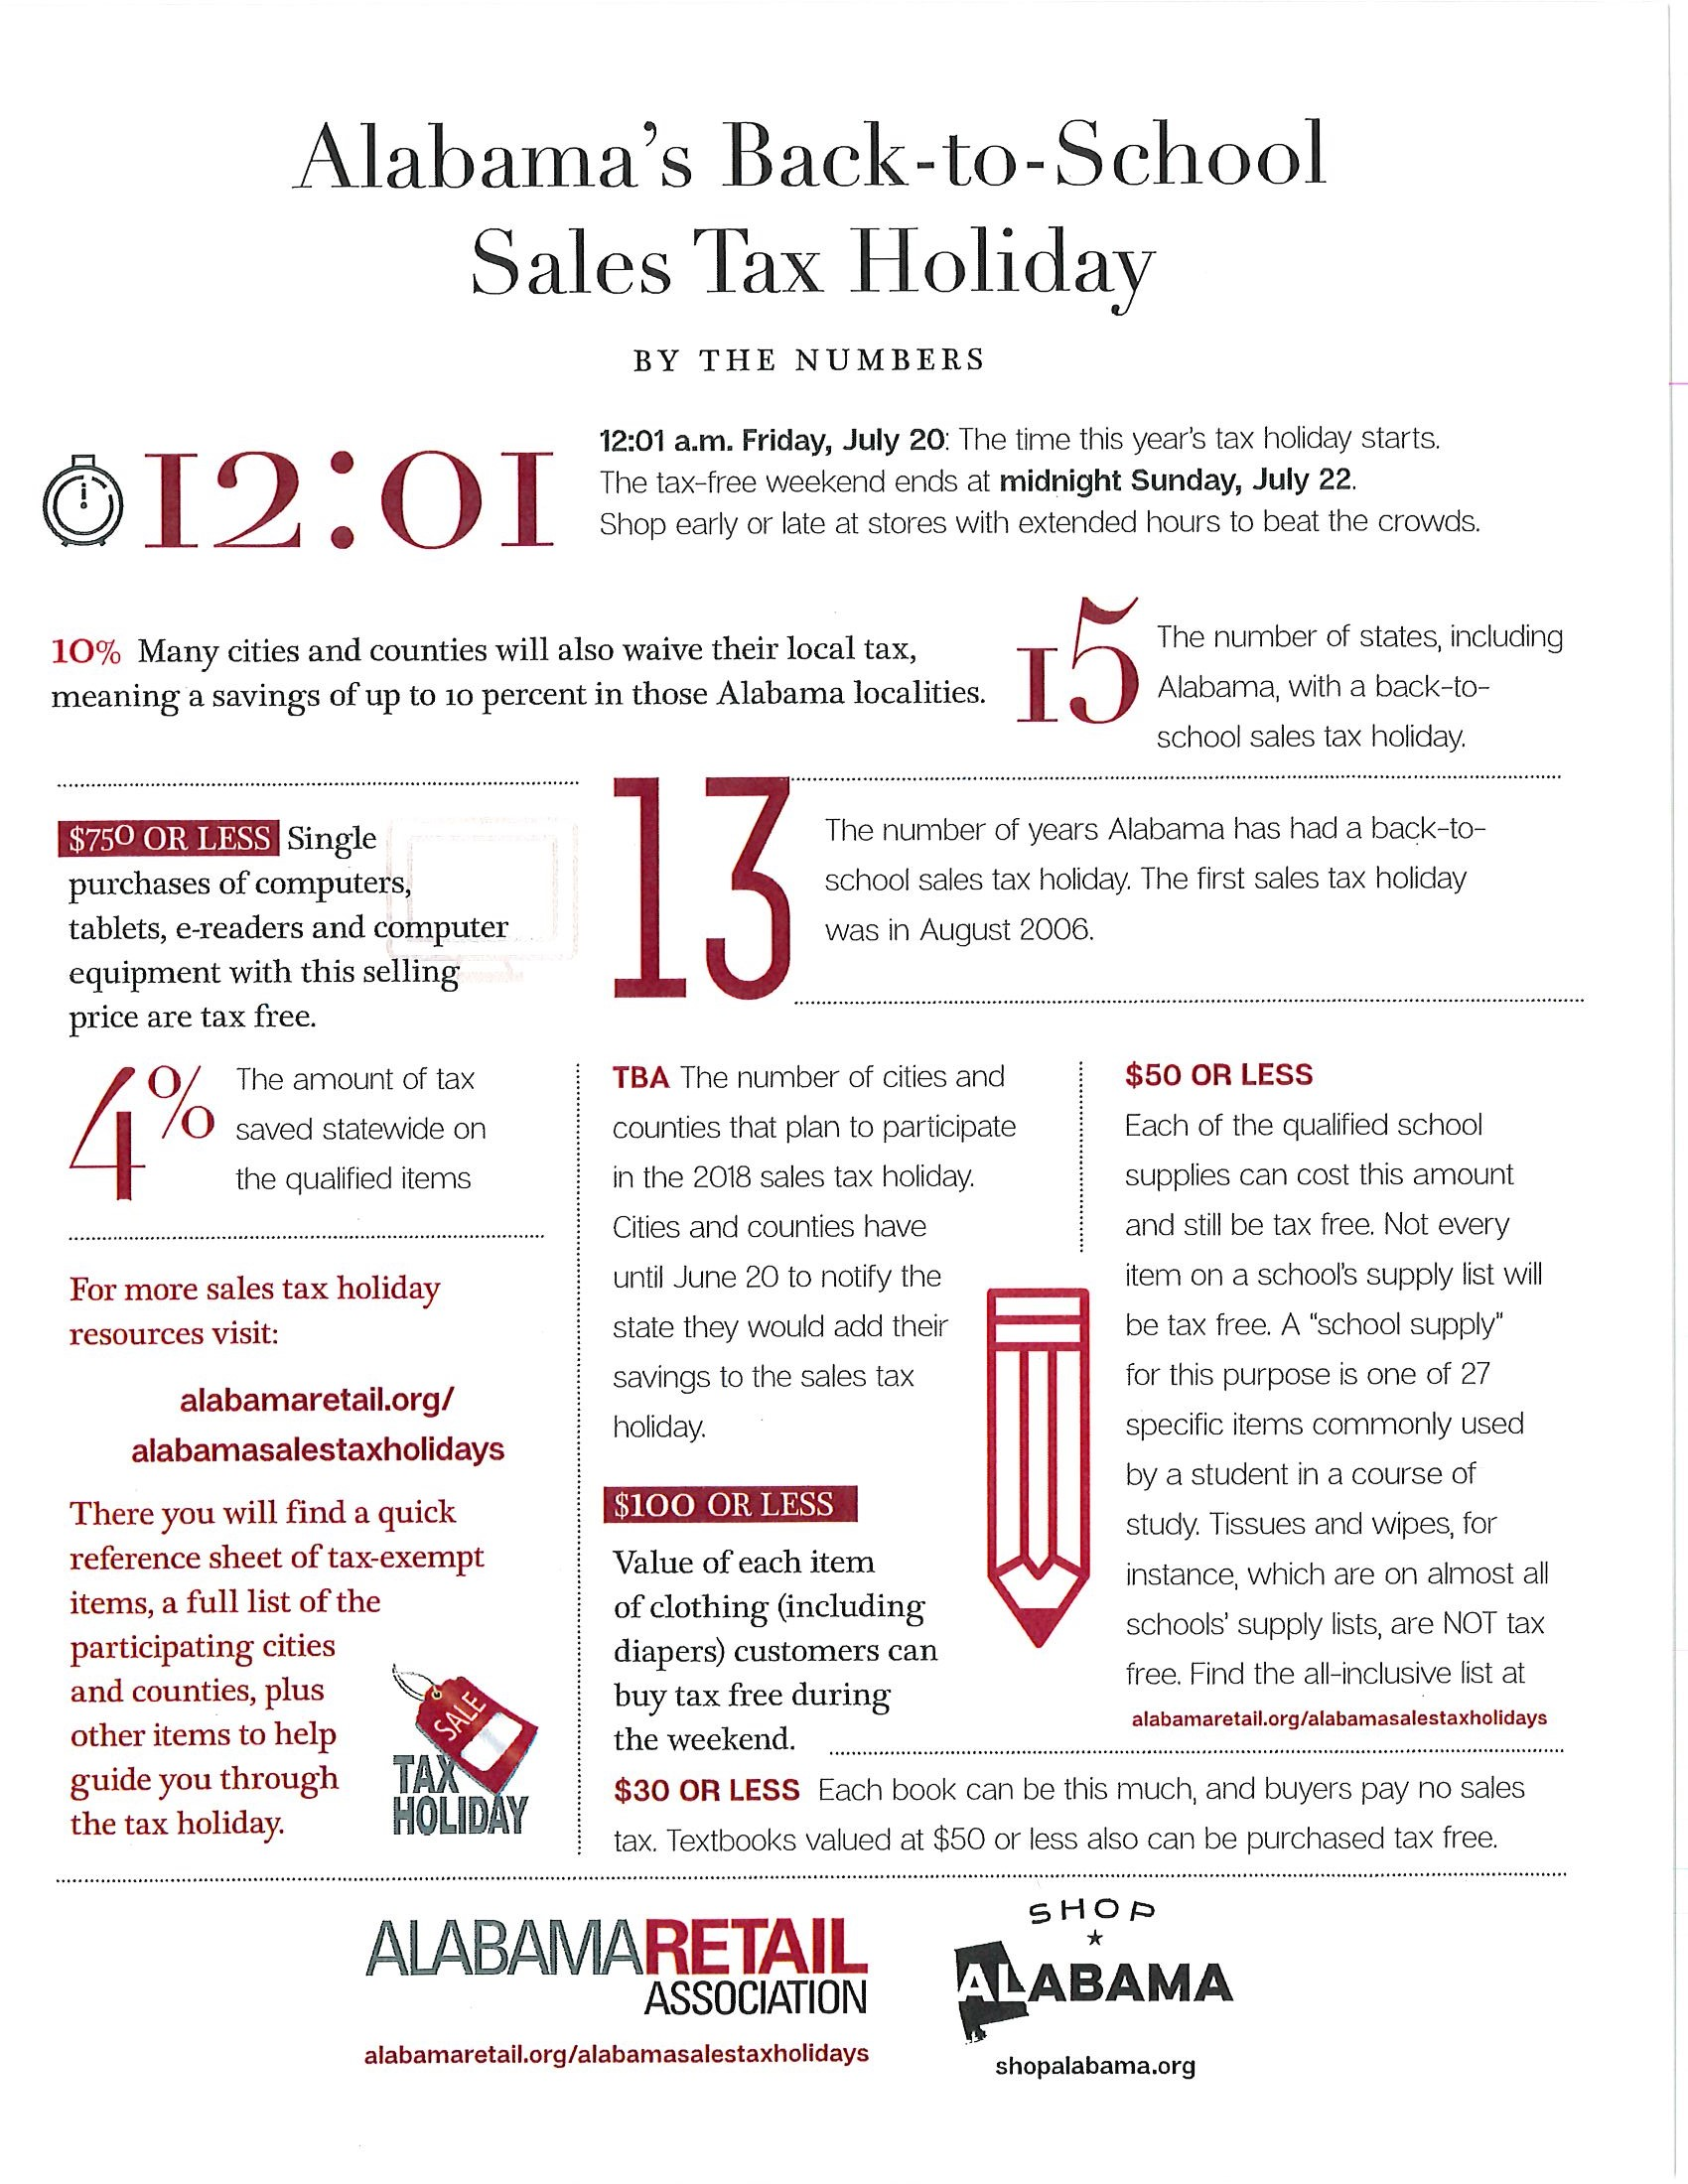 AL Sales Tax Holiday_Page_4.jpg